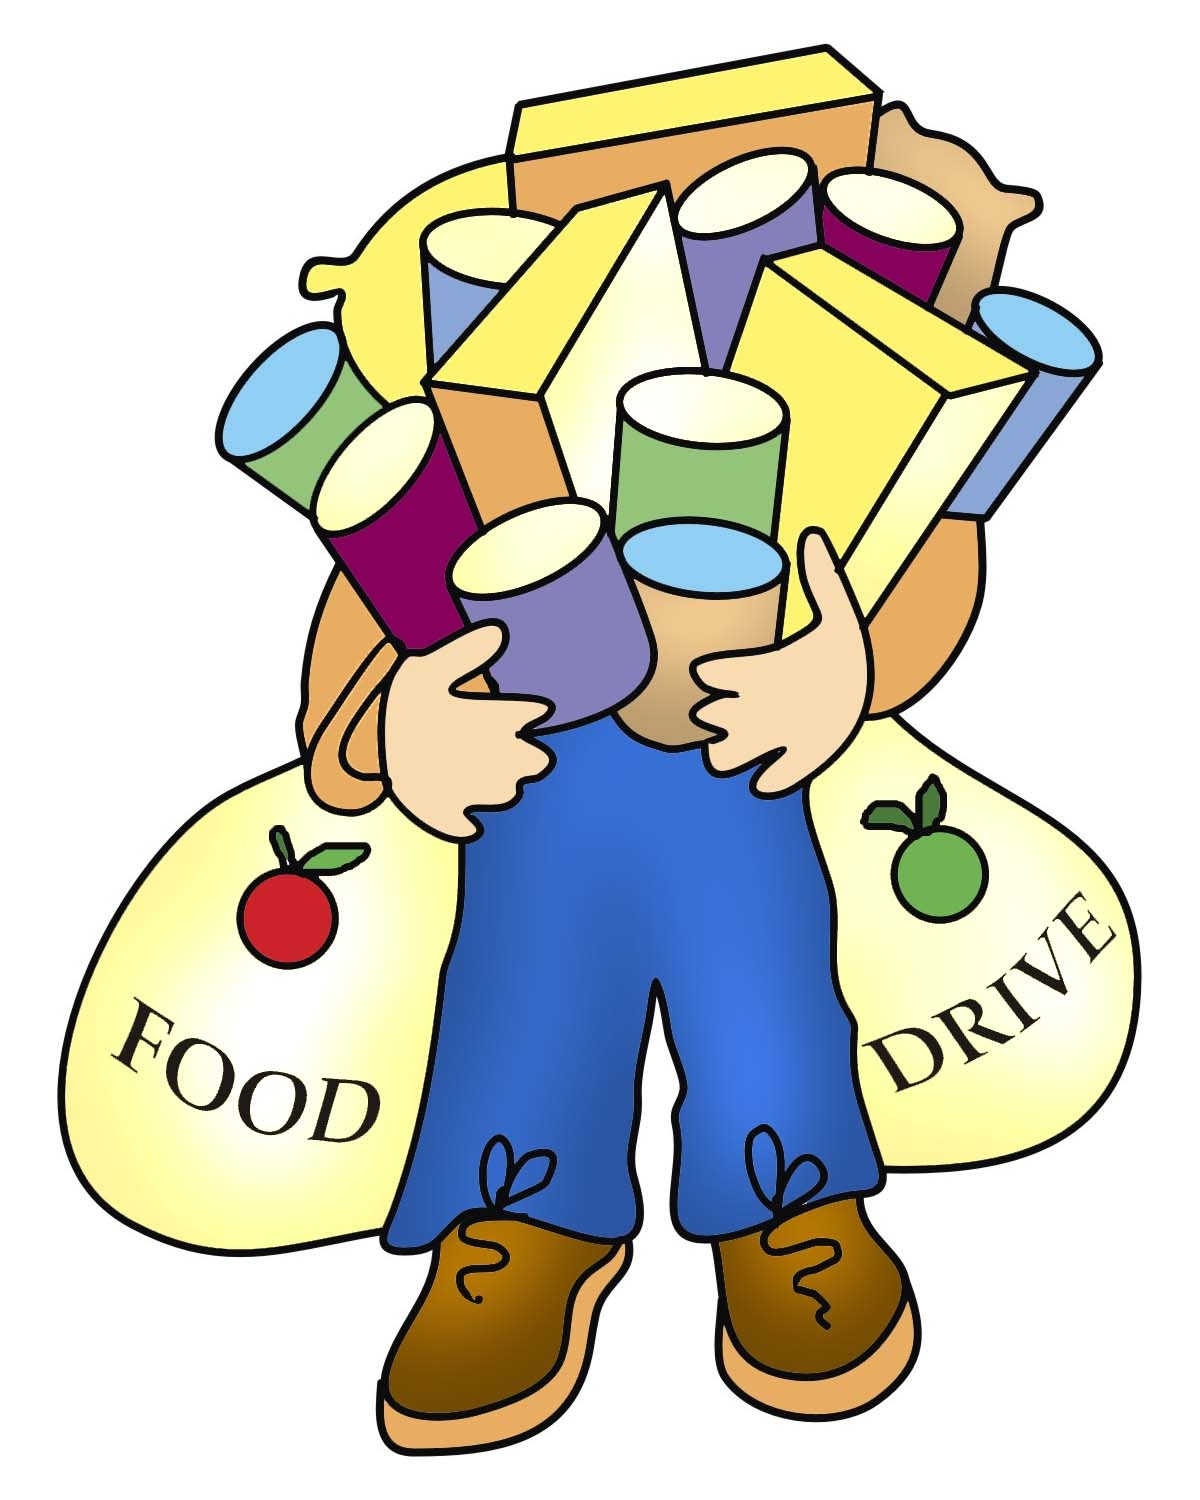 Thanksgiving food drive clip art.